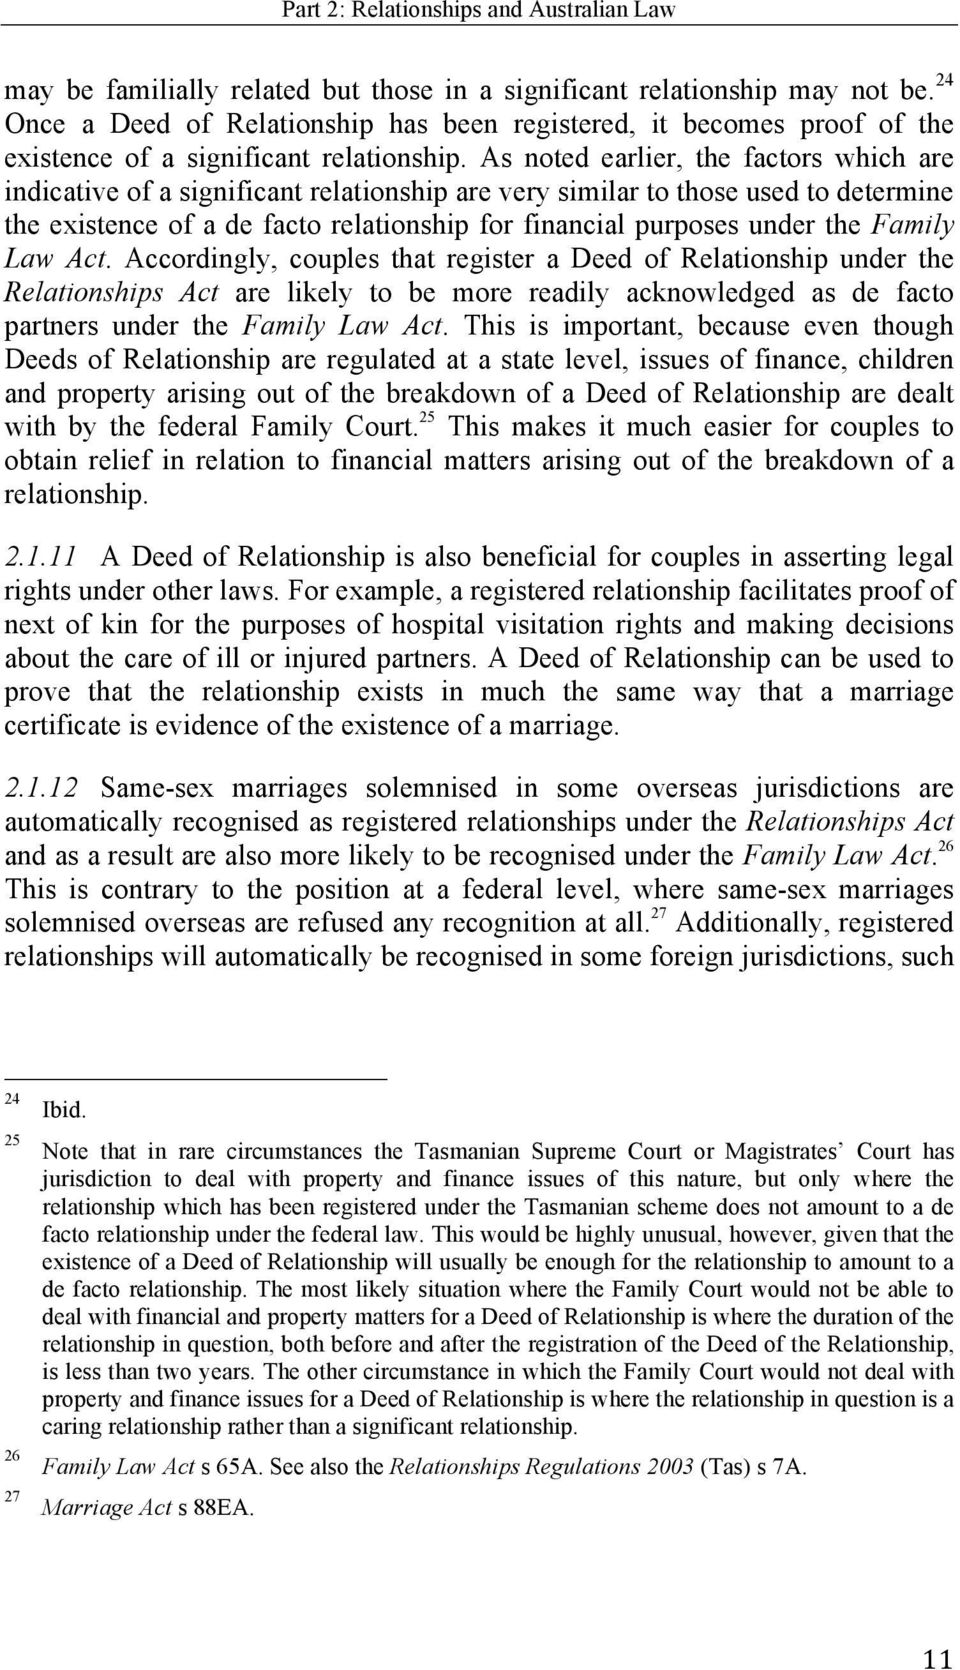 As noted earlier, the factors which are indicative of a significant relationship are very similar to those used to determine the existence of a de facto relationship for financial purposes under the